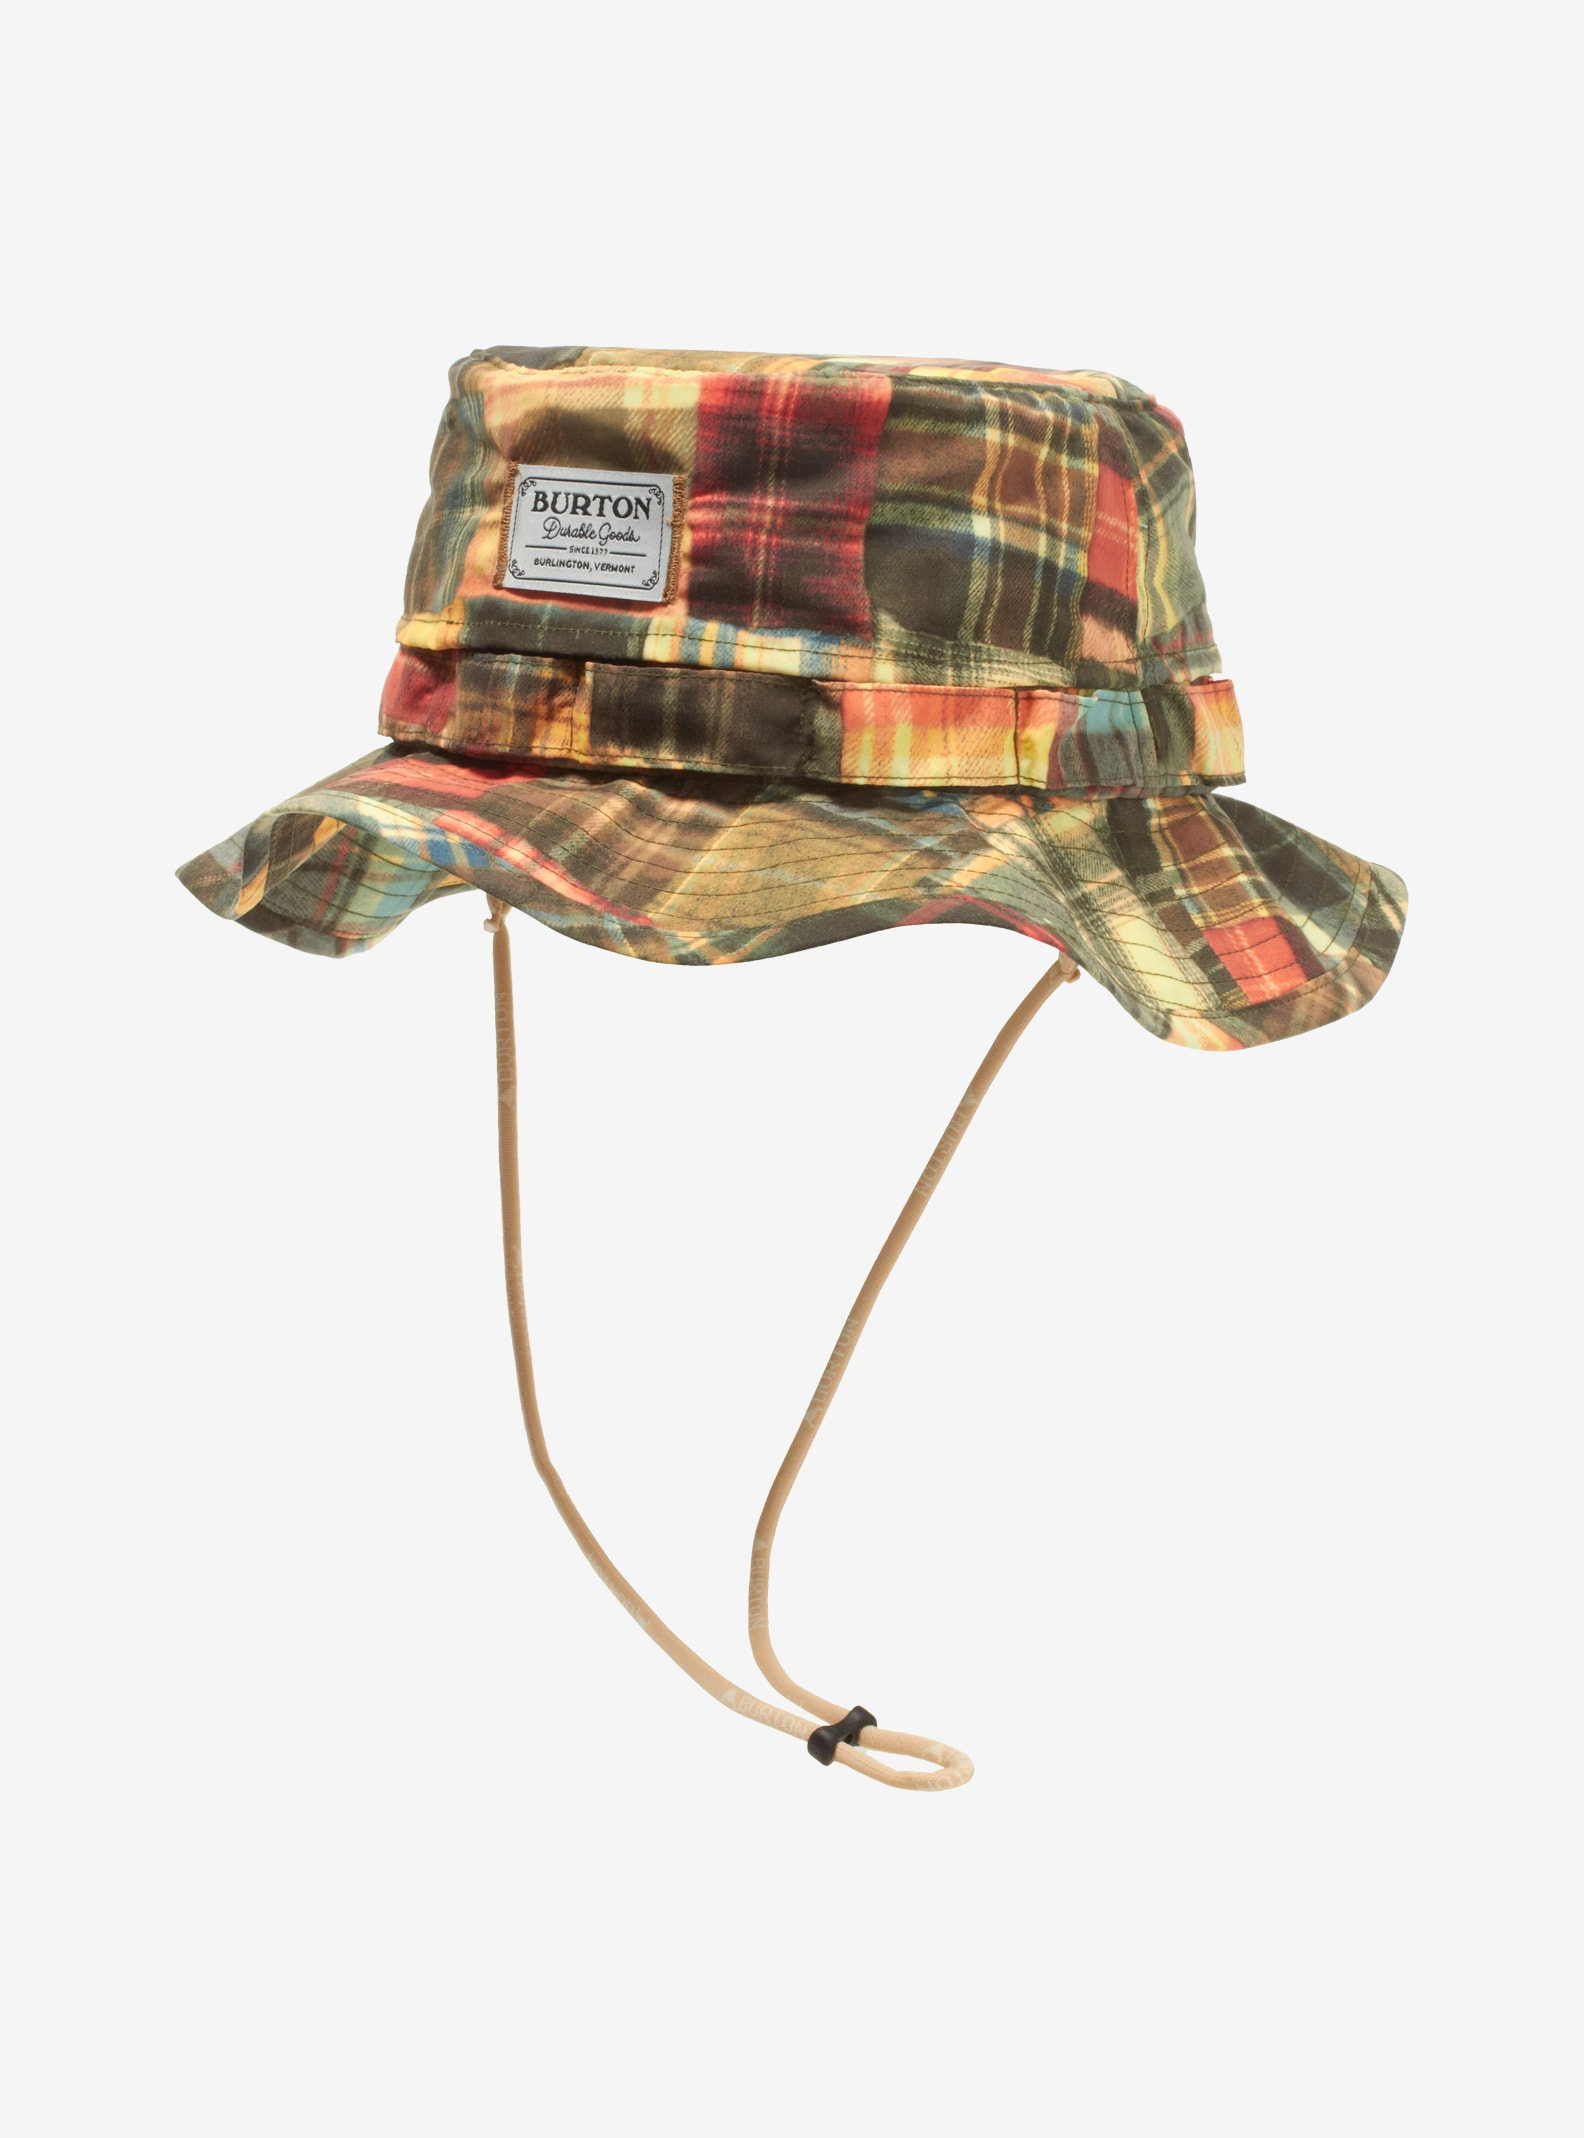 Men's Burton Adventure Hat shown in Well-Loved Patching